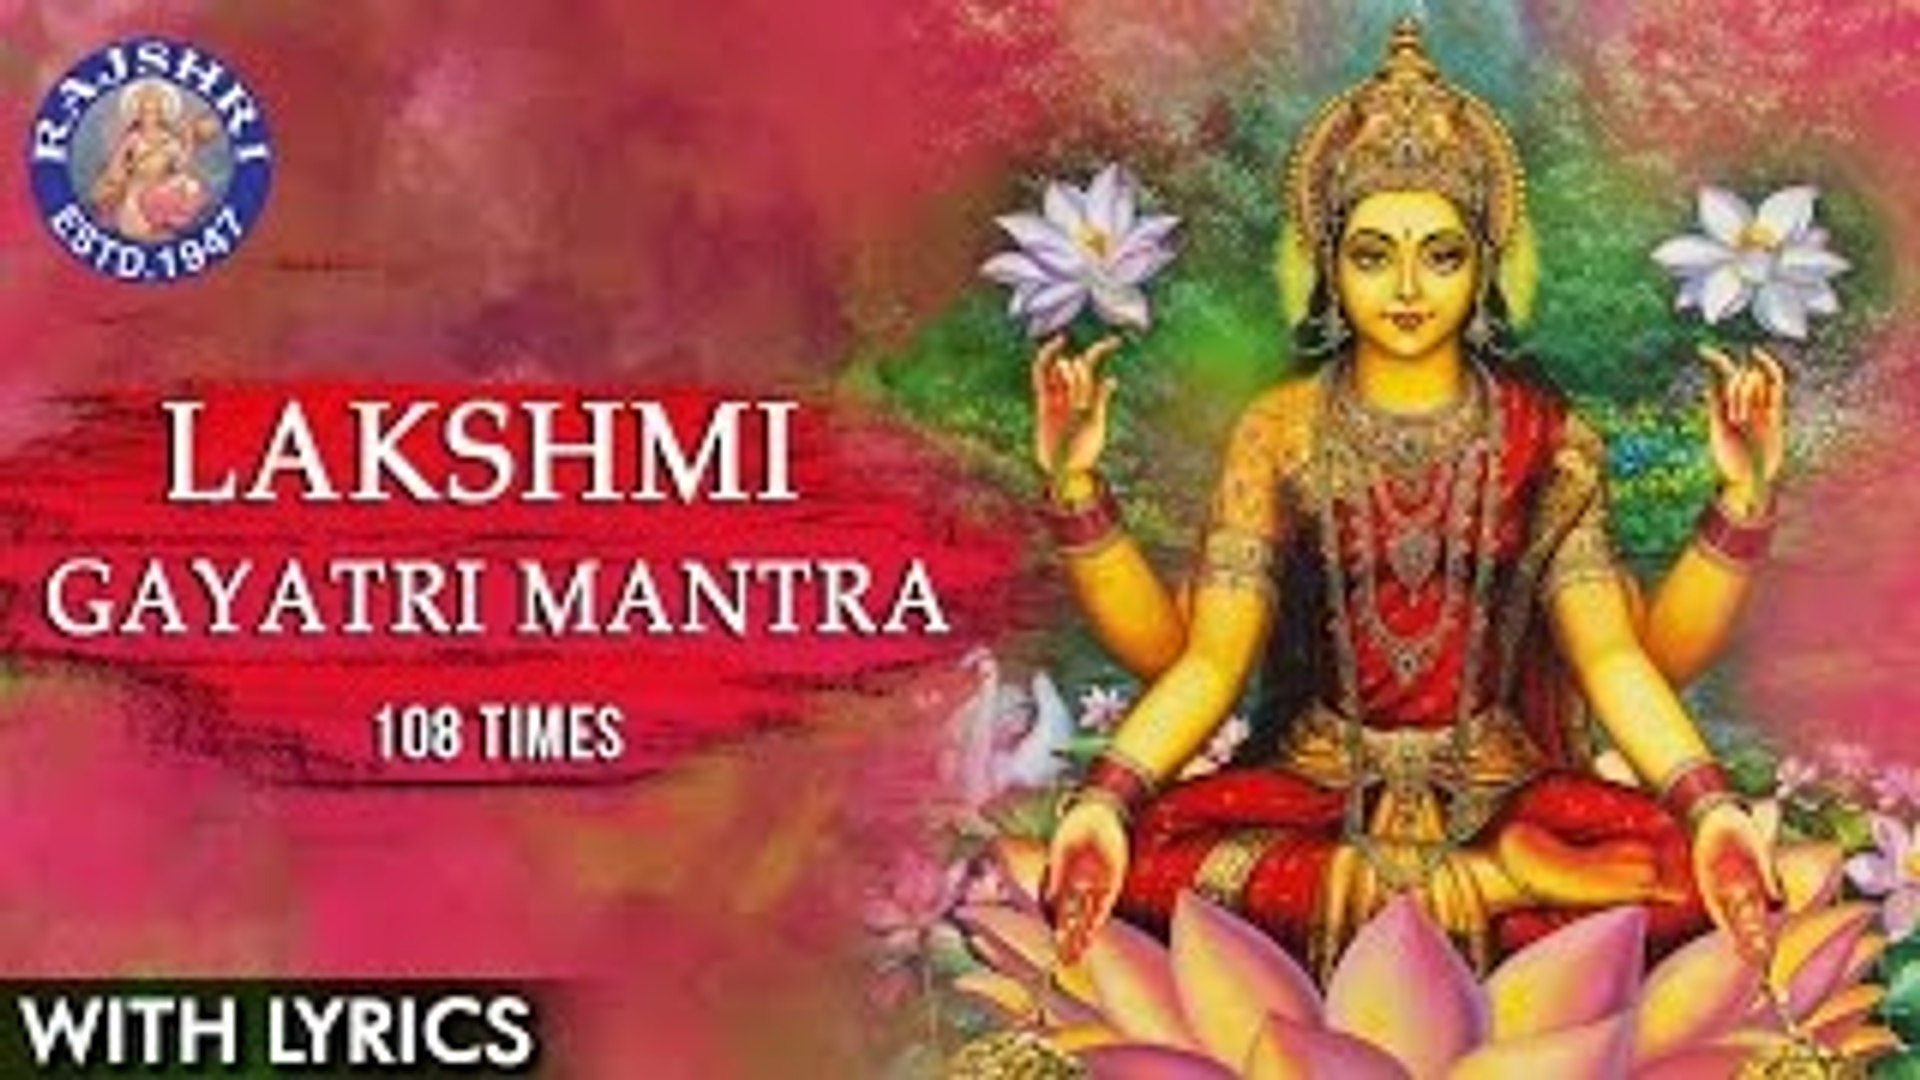 Sri Lakshmi Gayatri Mantra 108 Times | Powerful Mantra For Money & Wealth |  Diwali Special 2016